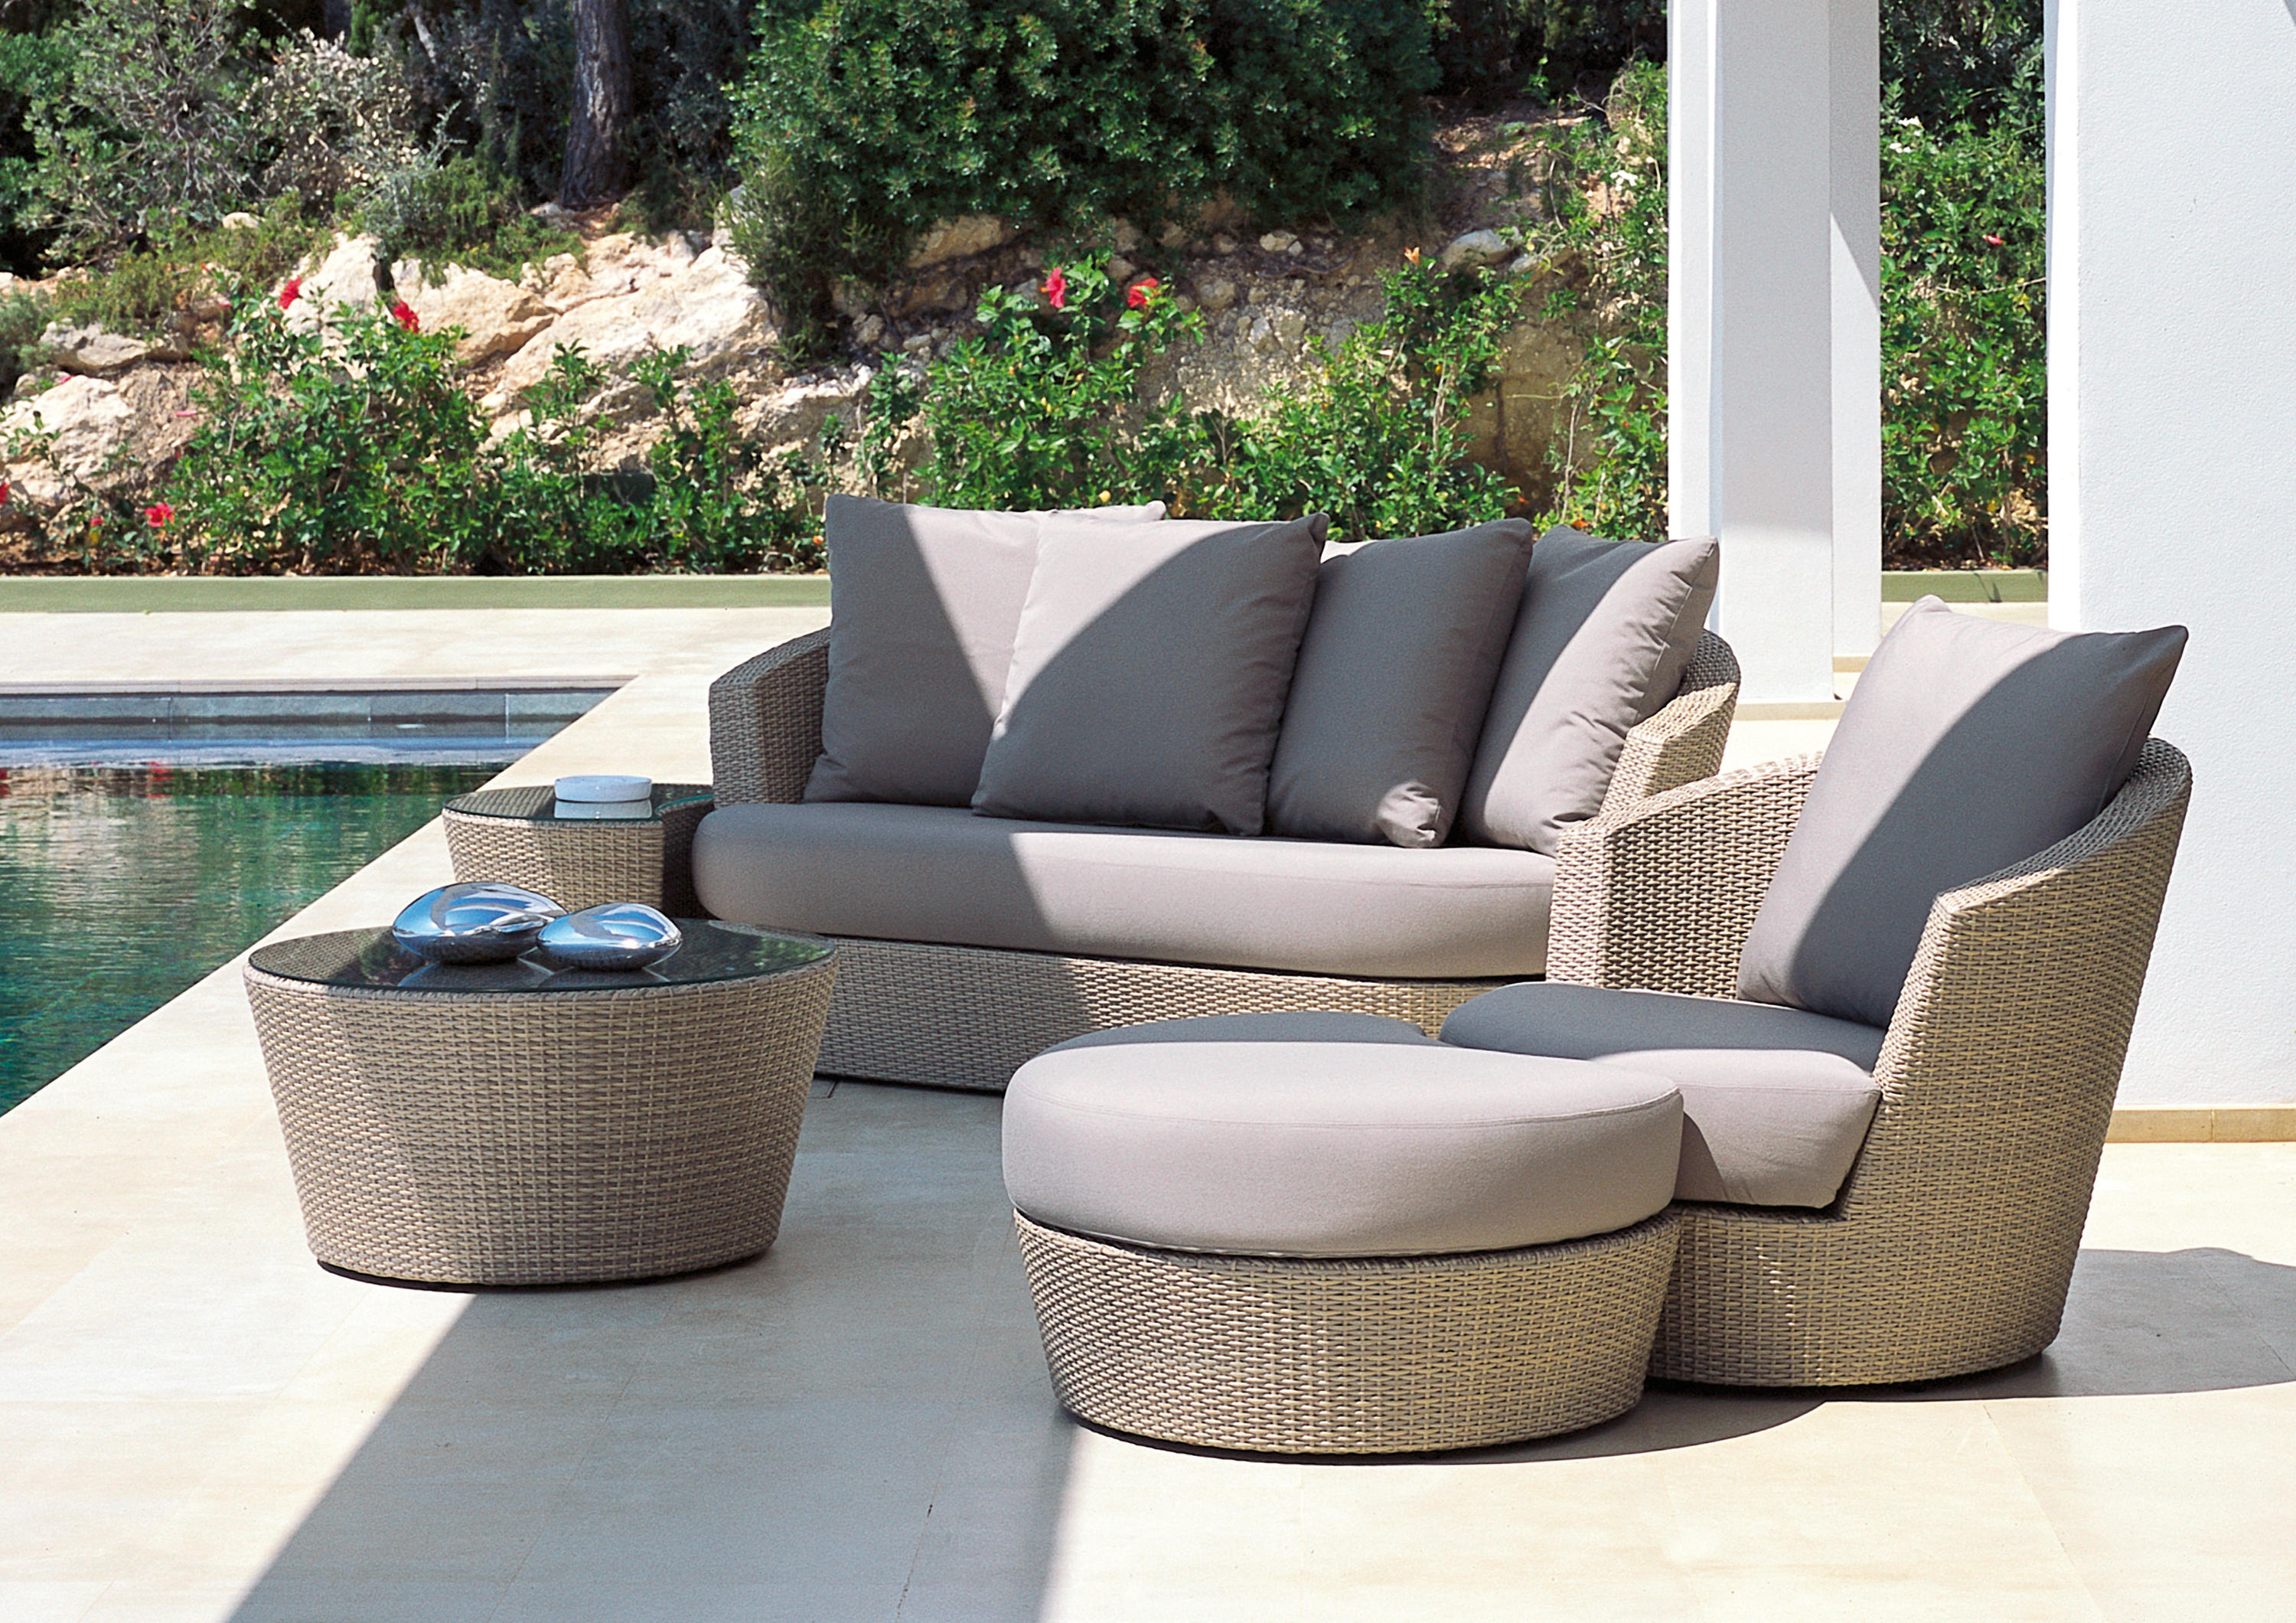 Attrayant Eden Roc Combination With Lounge Chair | Ottoman U0026 A Side Table By Rausch  Classics ...